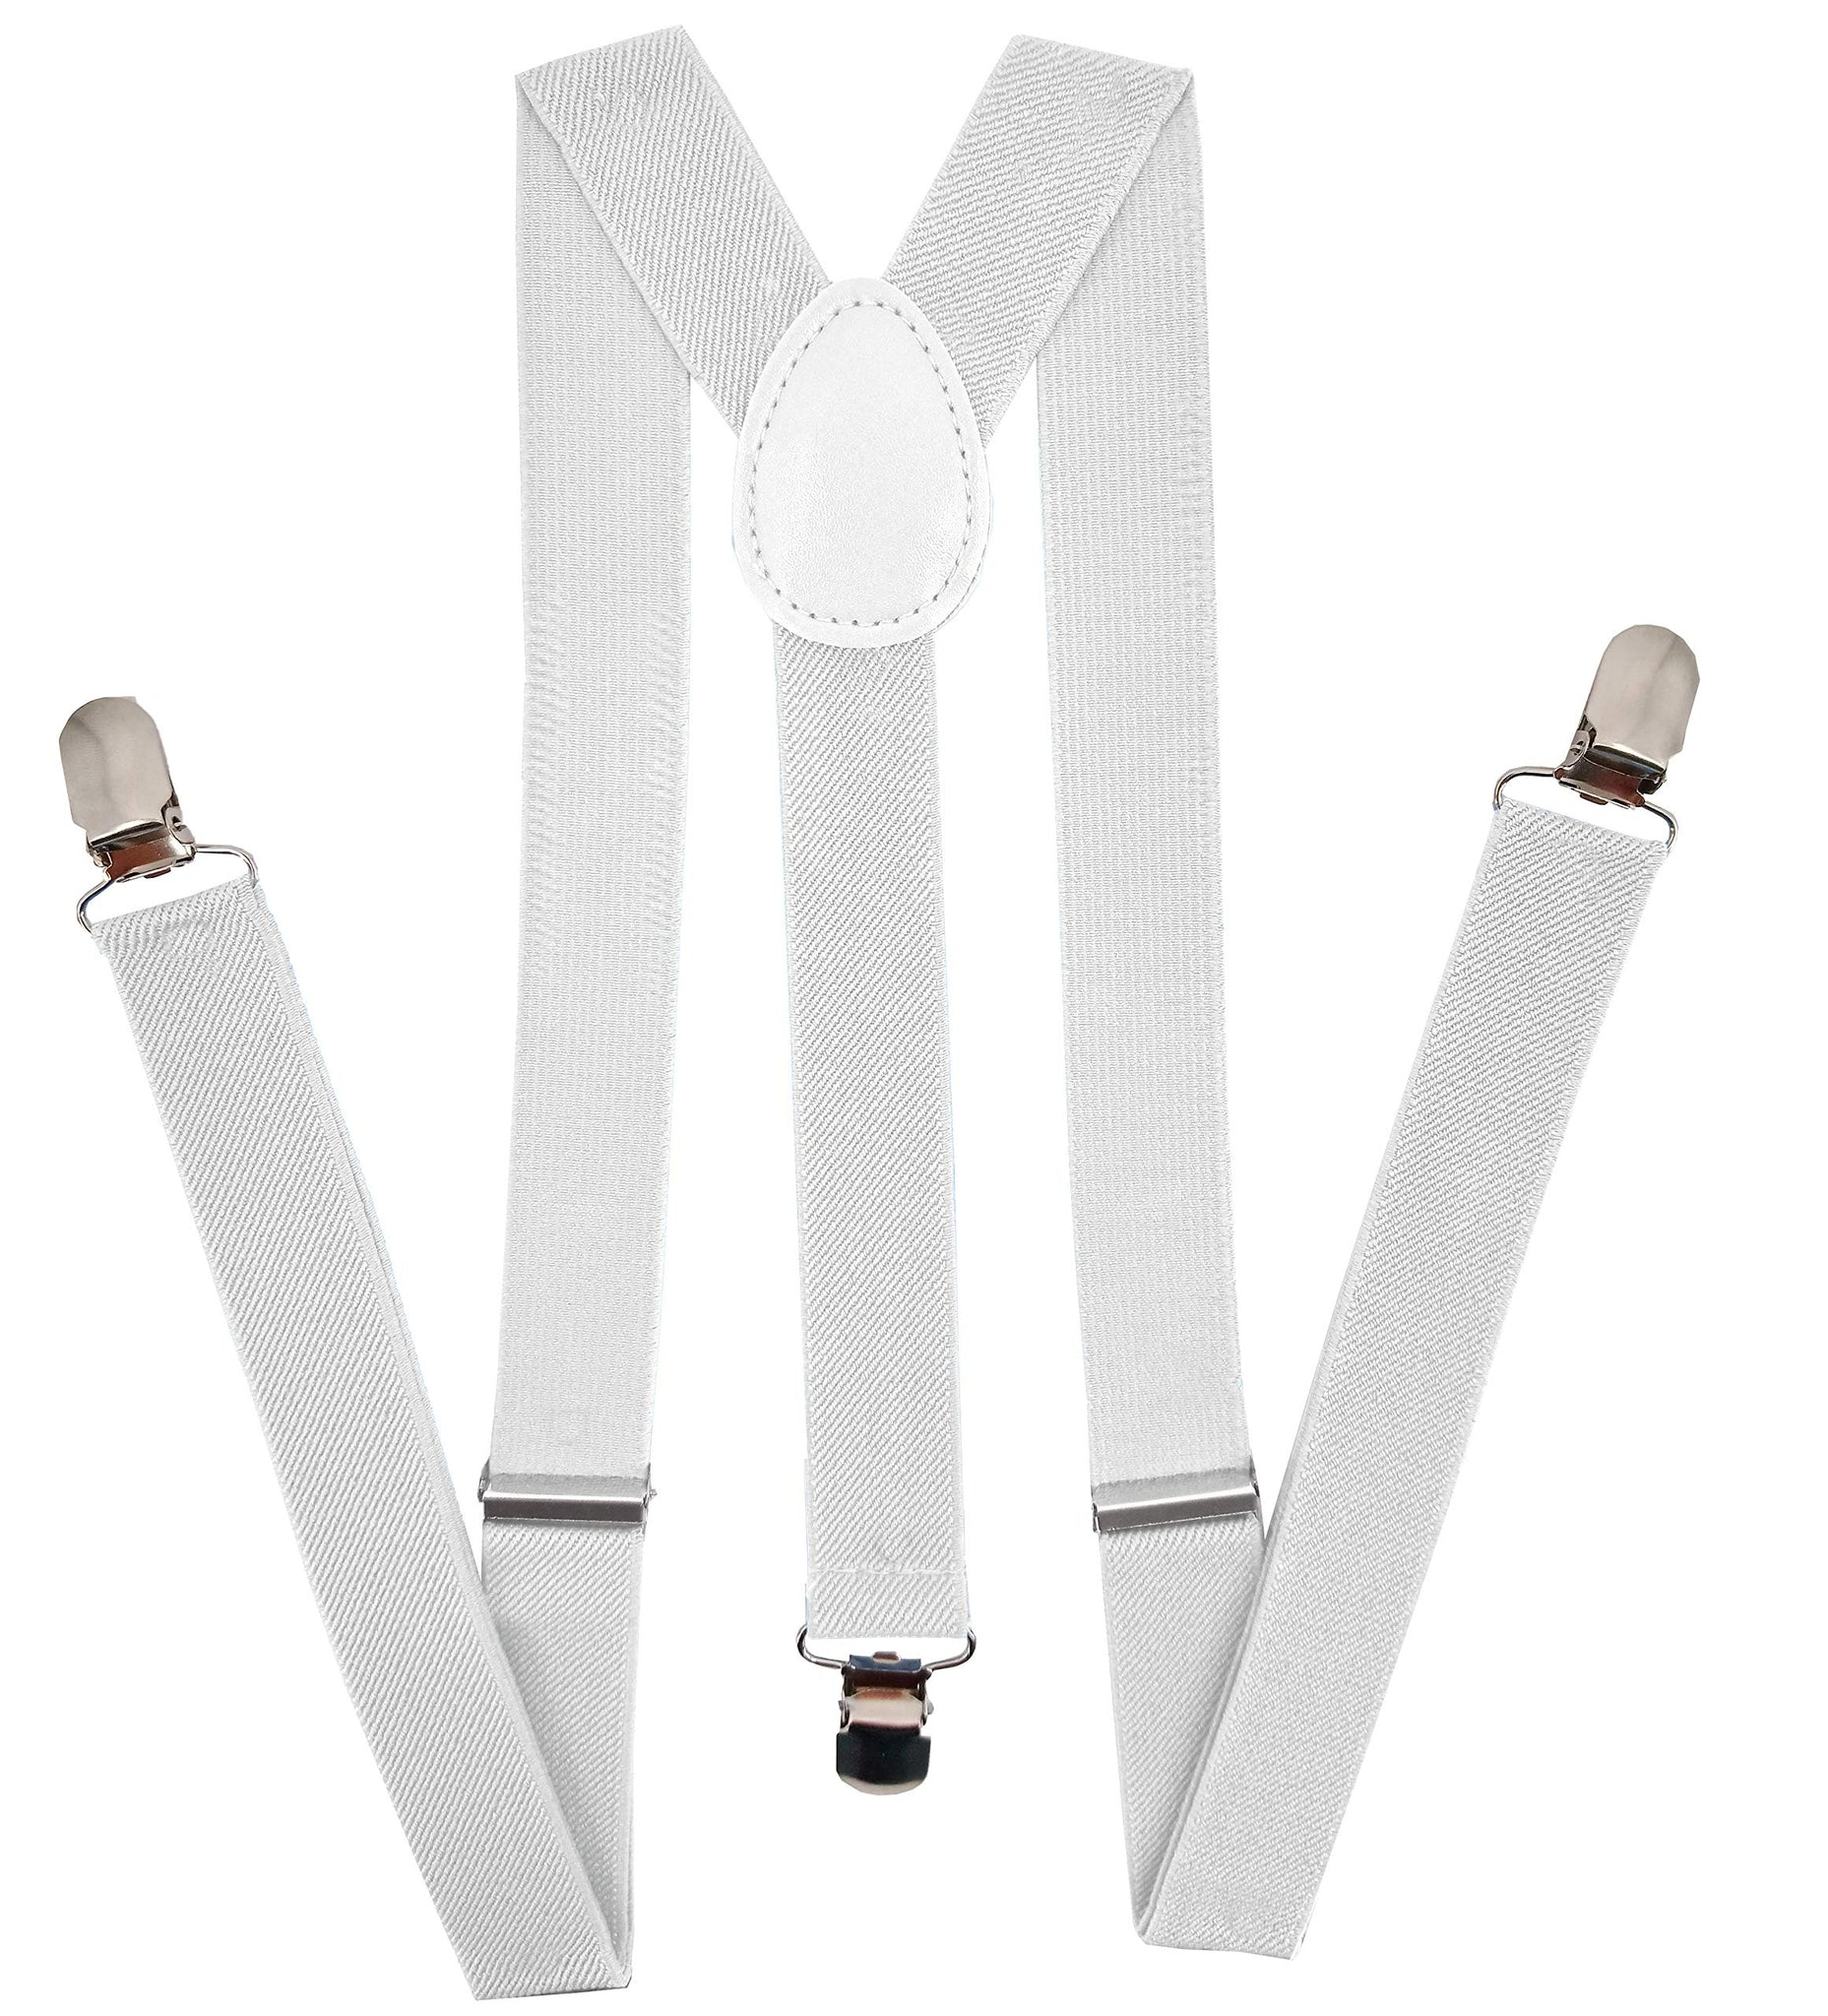 Suspenders 1 Inch Y Back Style Elastic Adjustable Straps for Men and Women